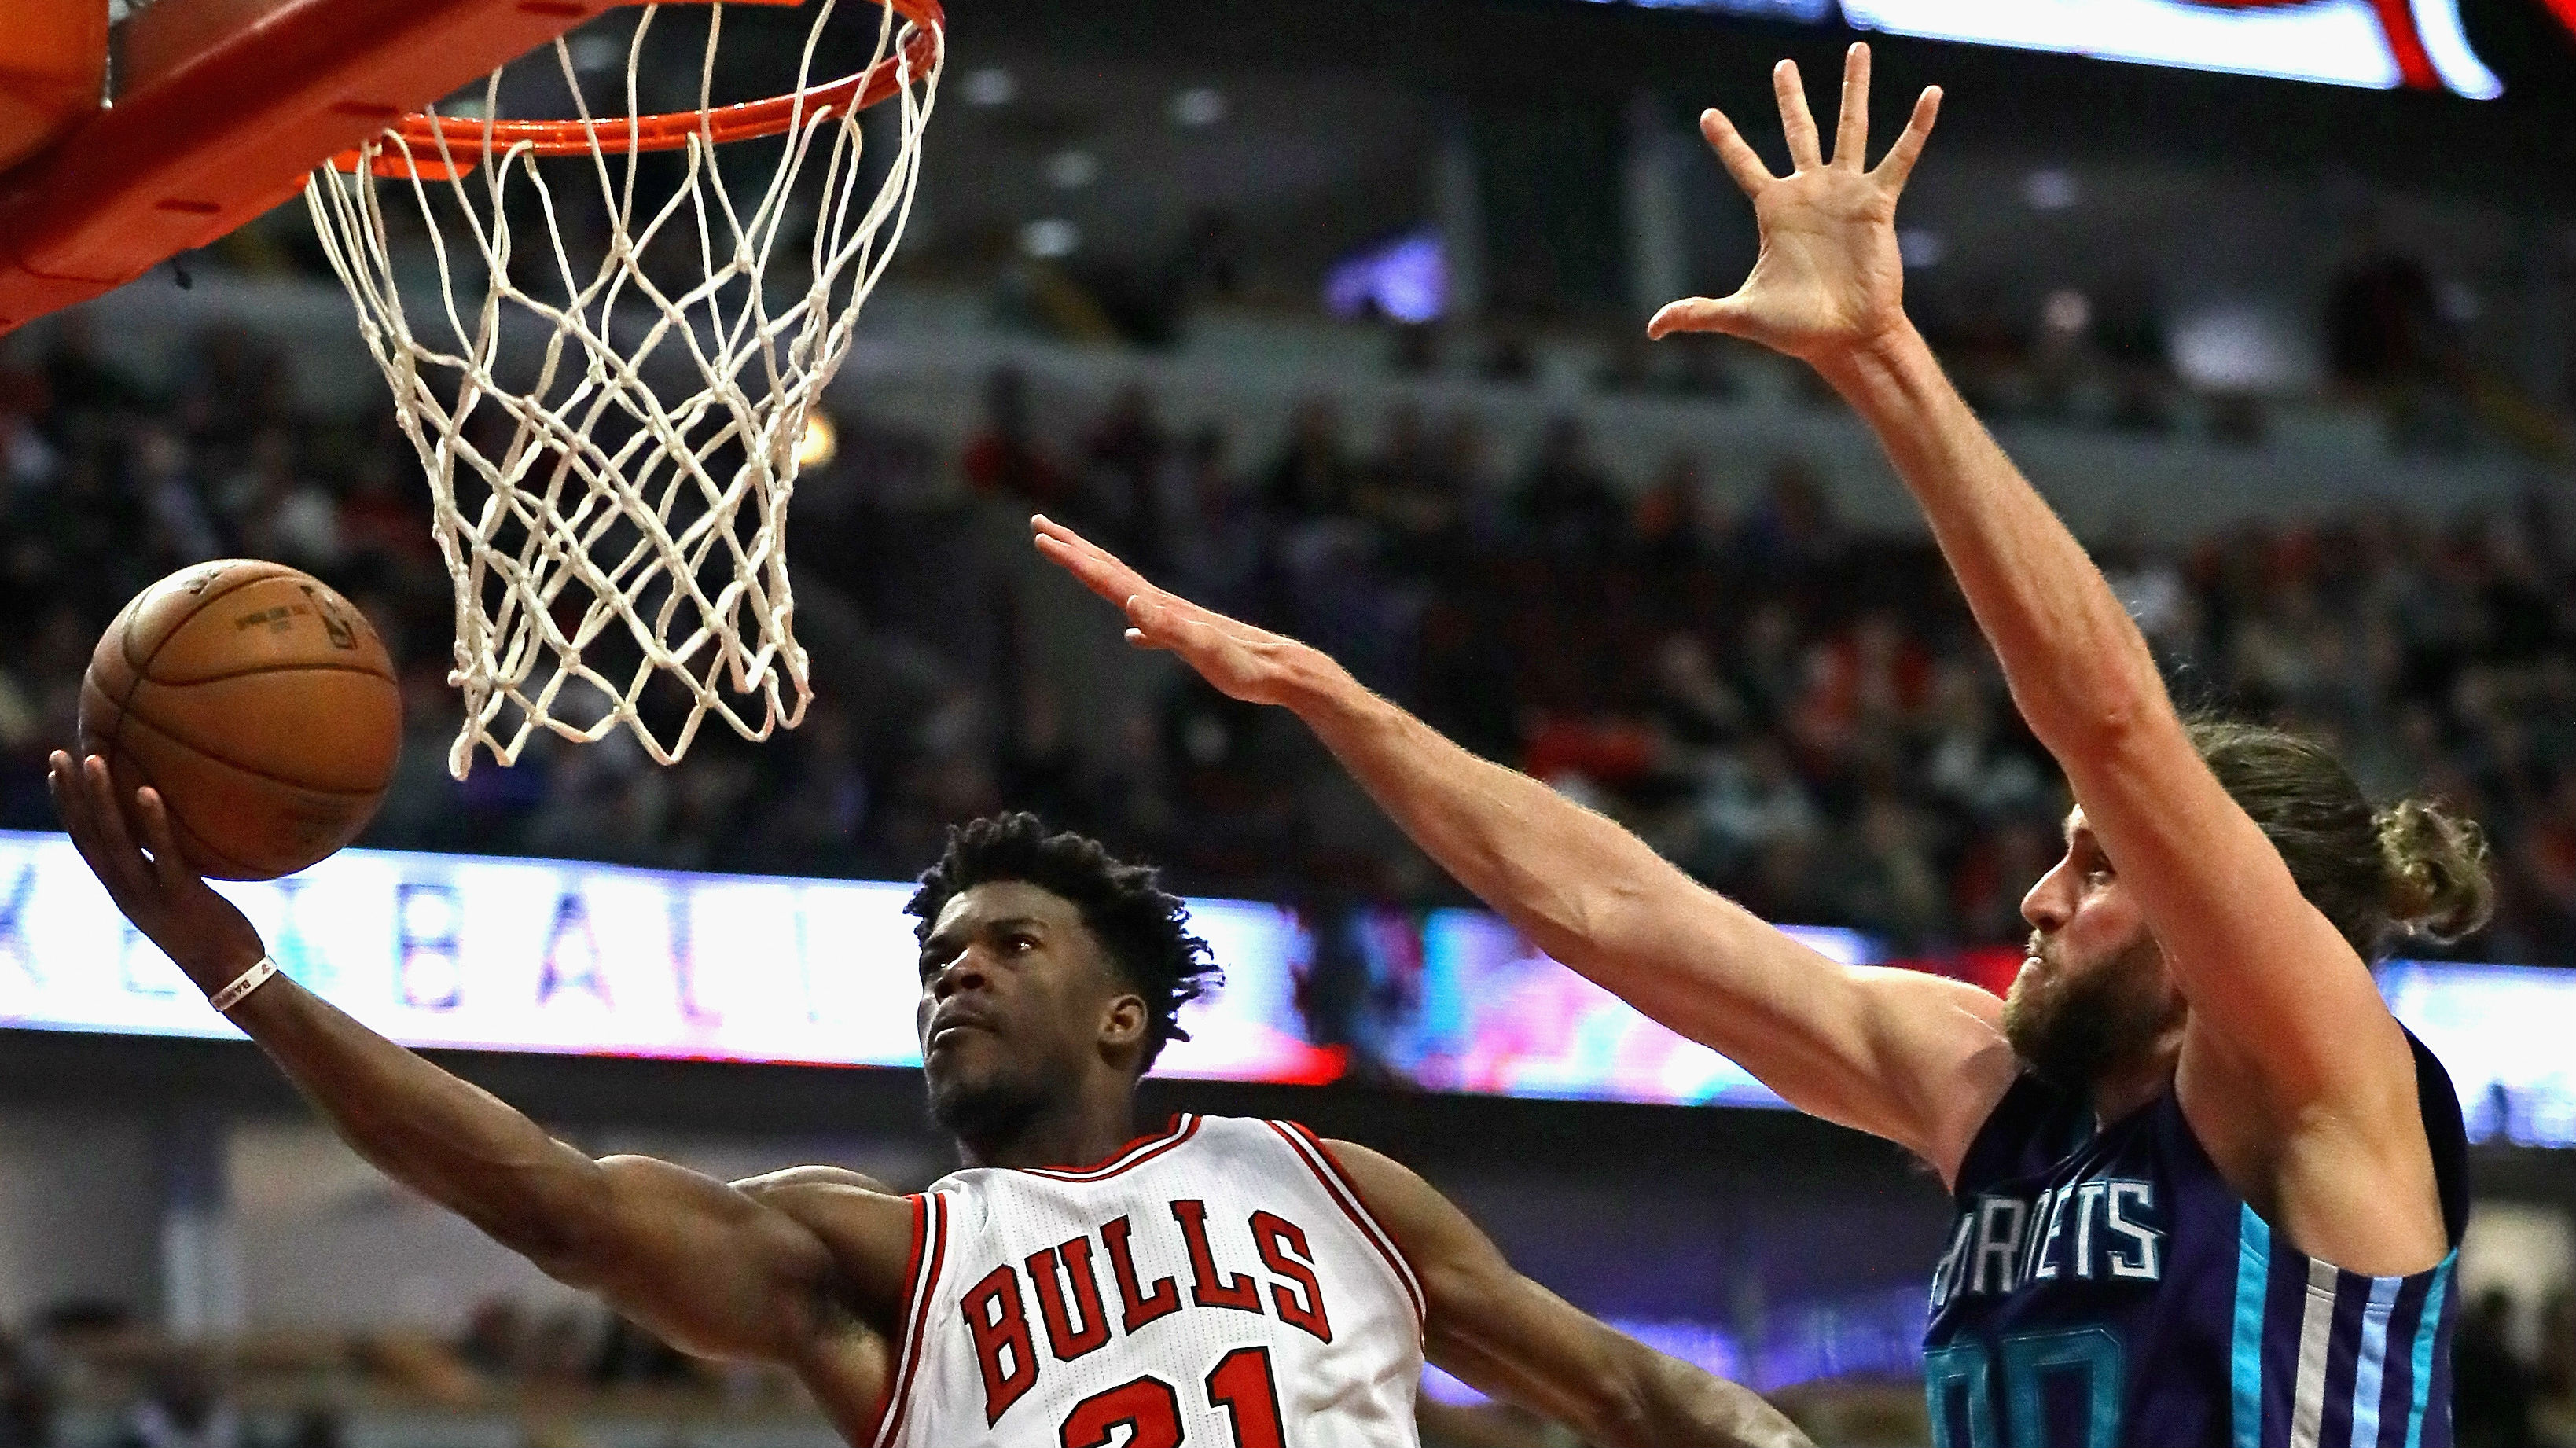 Butler's big night lifts Bulls, Cavs and Warriors win